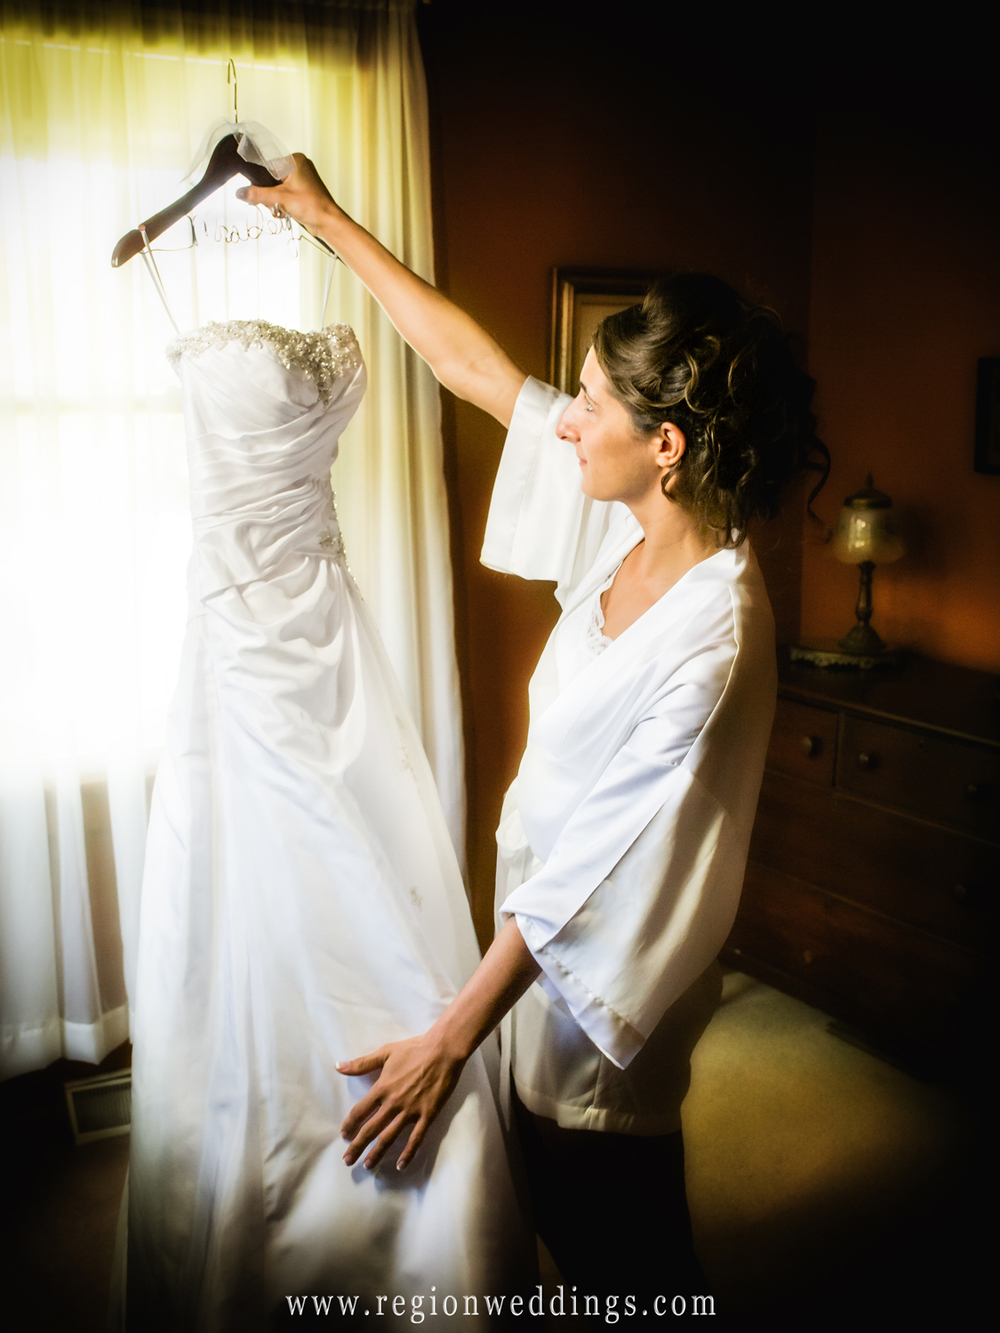 The bride admires her beautiful wedding dress on the morning of her June wedding in Homewood, Illinois.